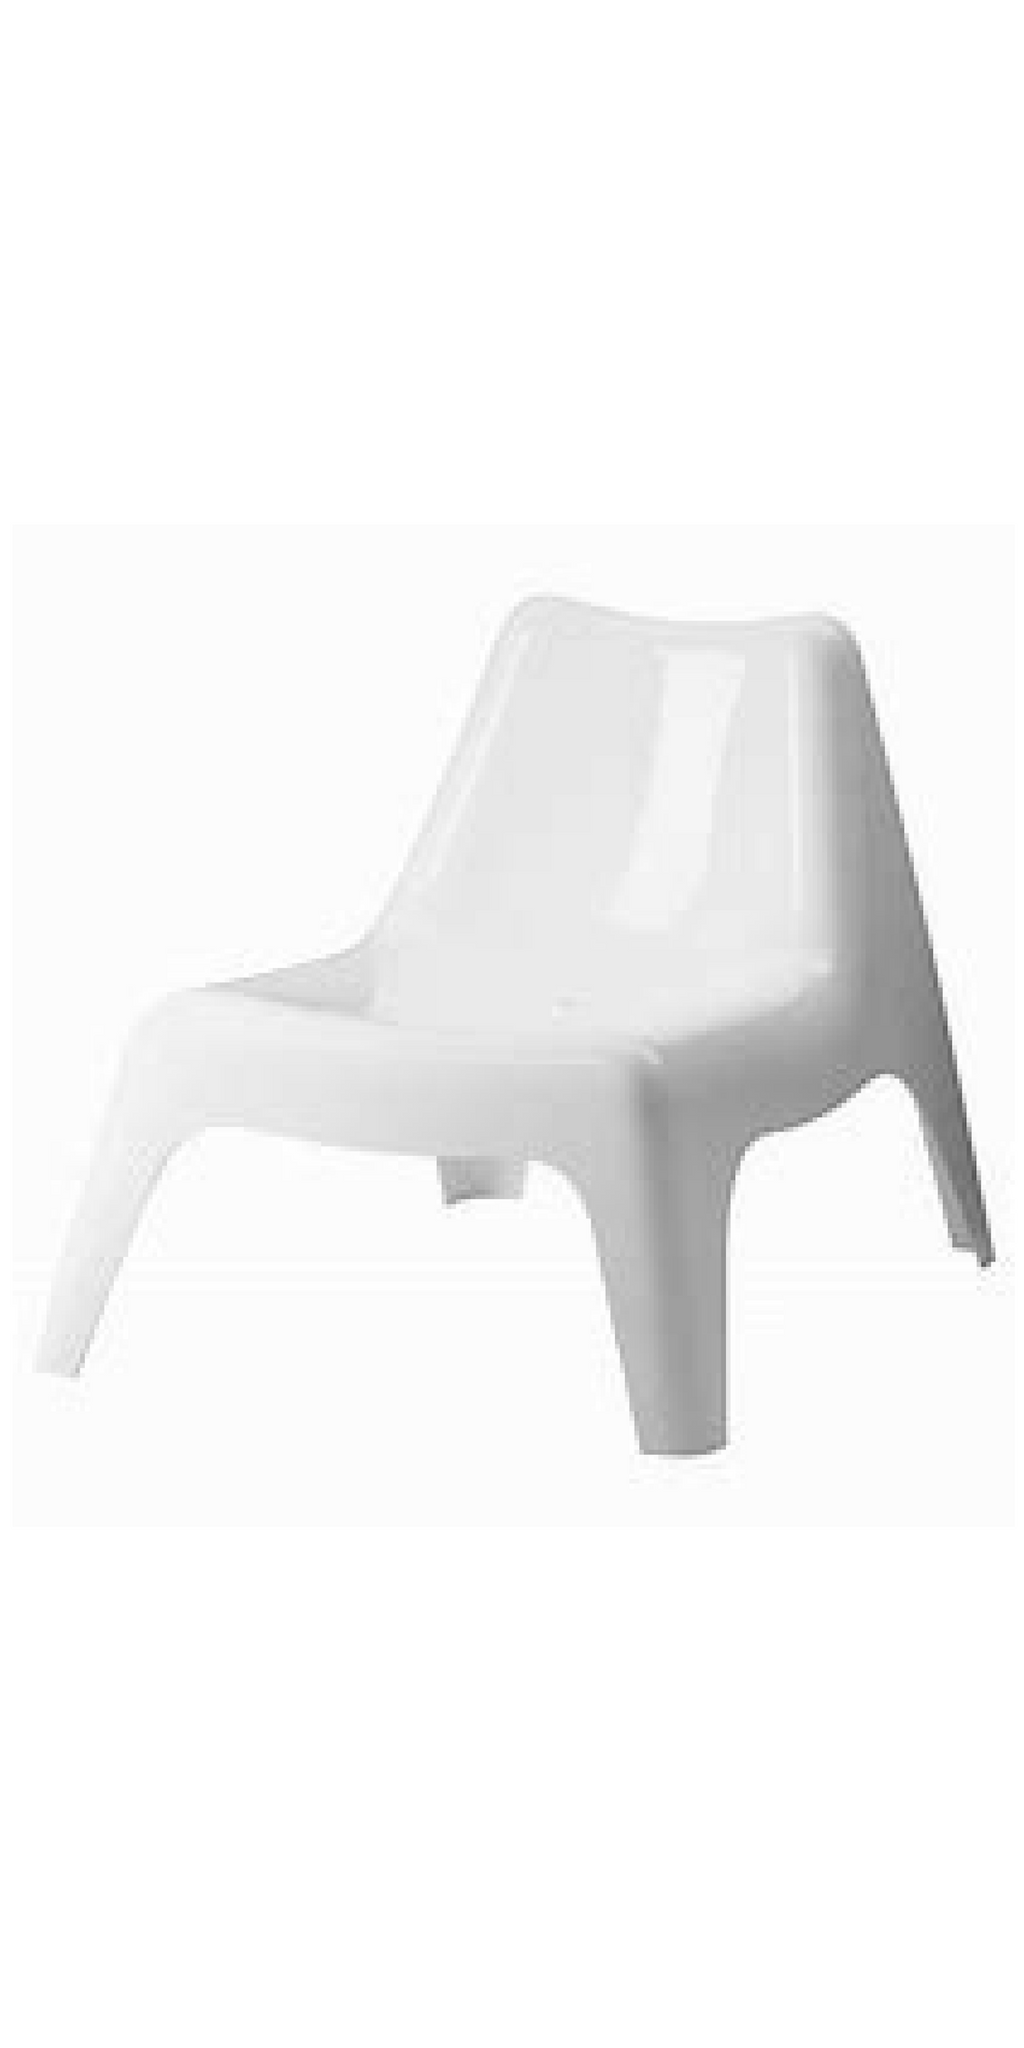 Outdoor Chair - White Resin